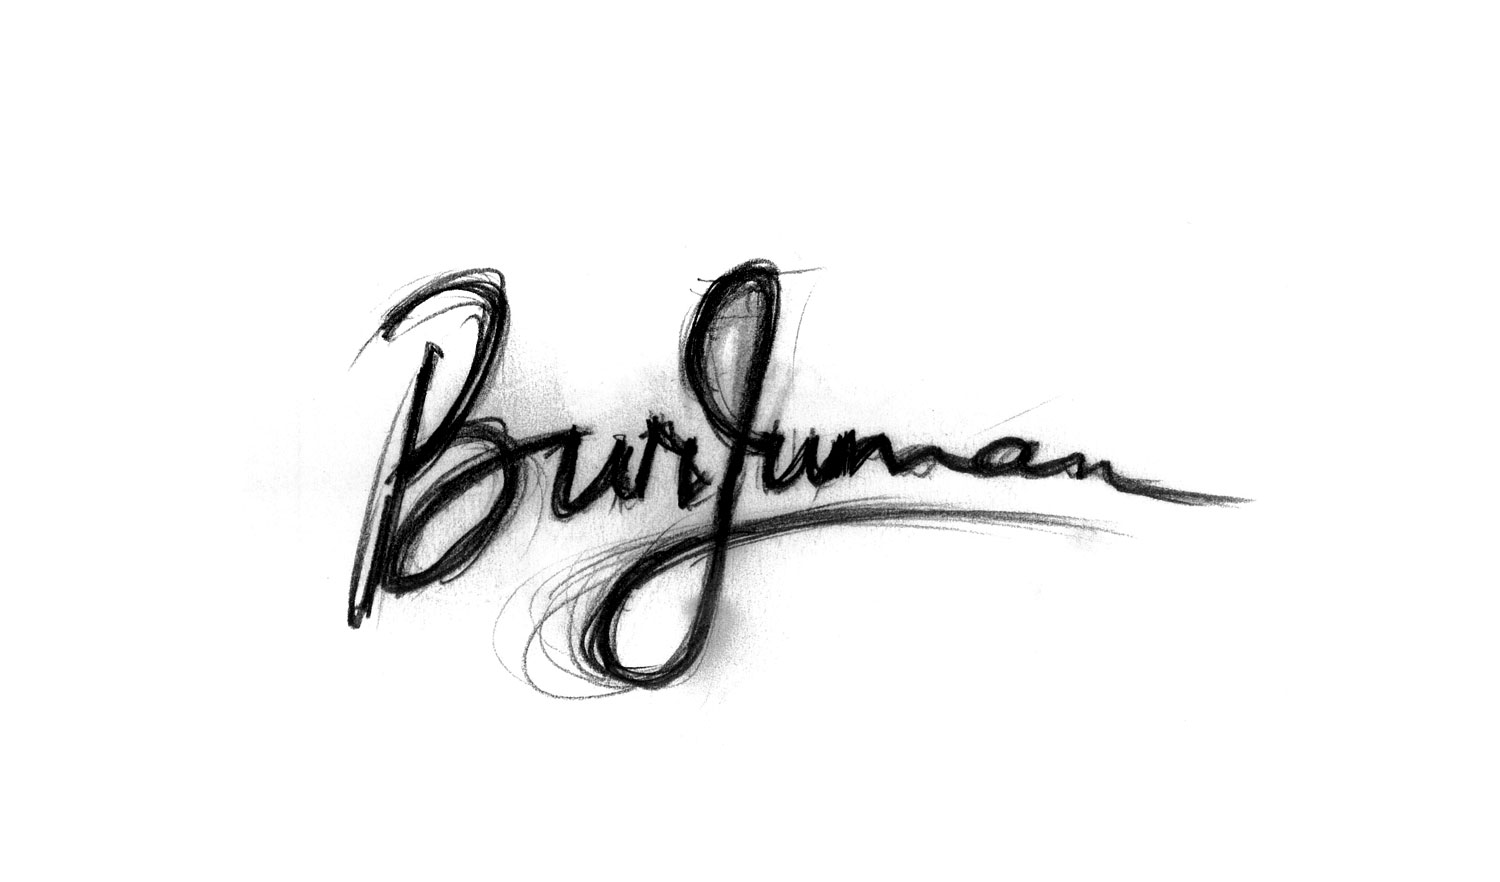 BurJuman-Evolution-of-Logos-03.jpg